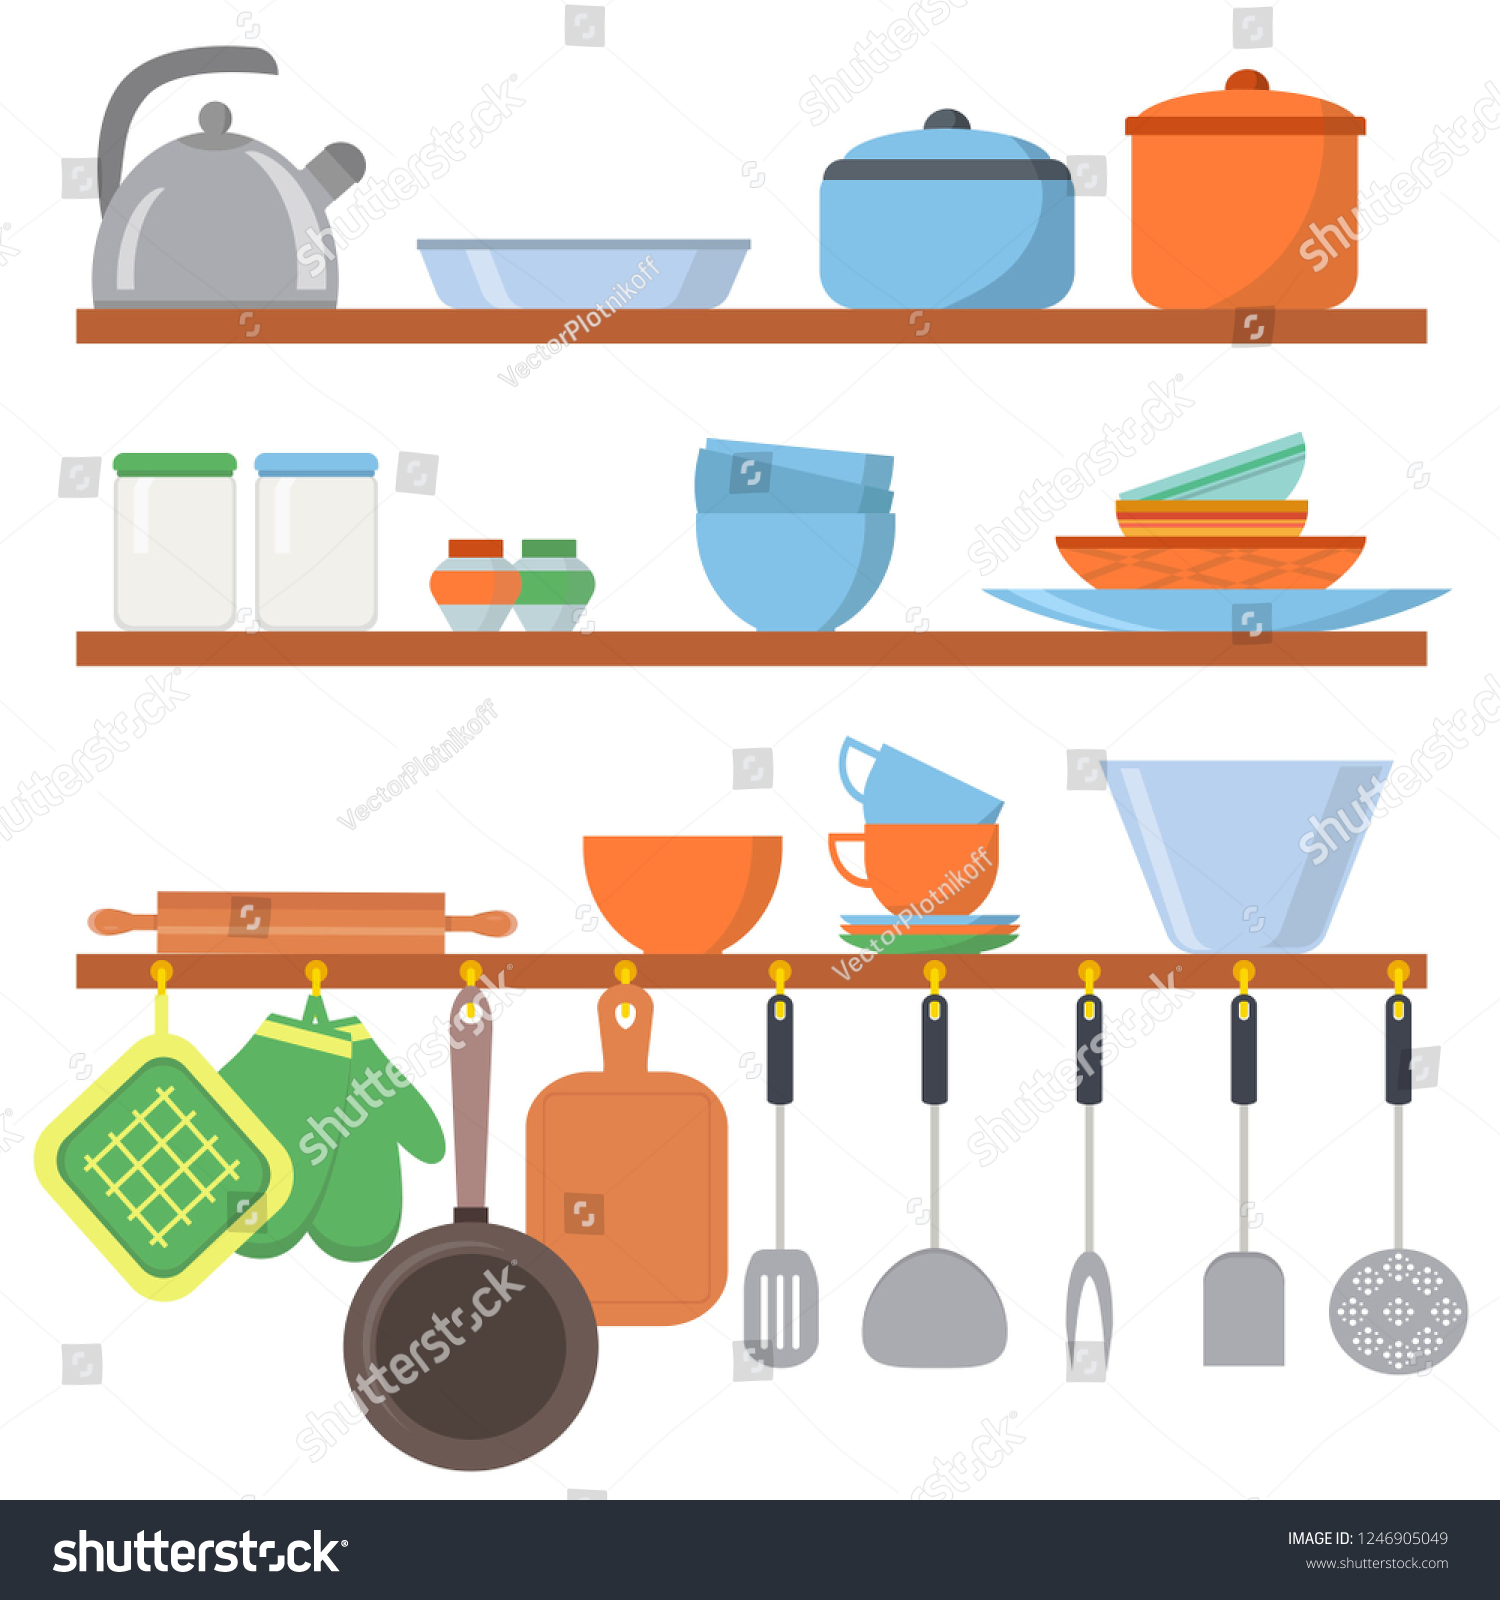 3fc3bcd9b5 Kitchen equipments and utensils big set icons on shelf isolated on white  background. Cooking tools objects collection. Kitchenware in flat style -  Vector